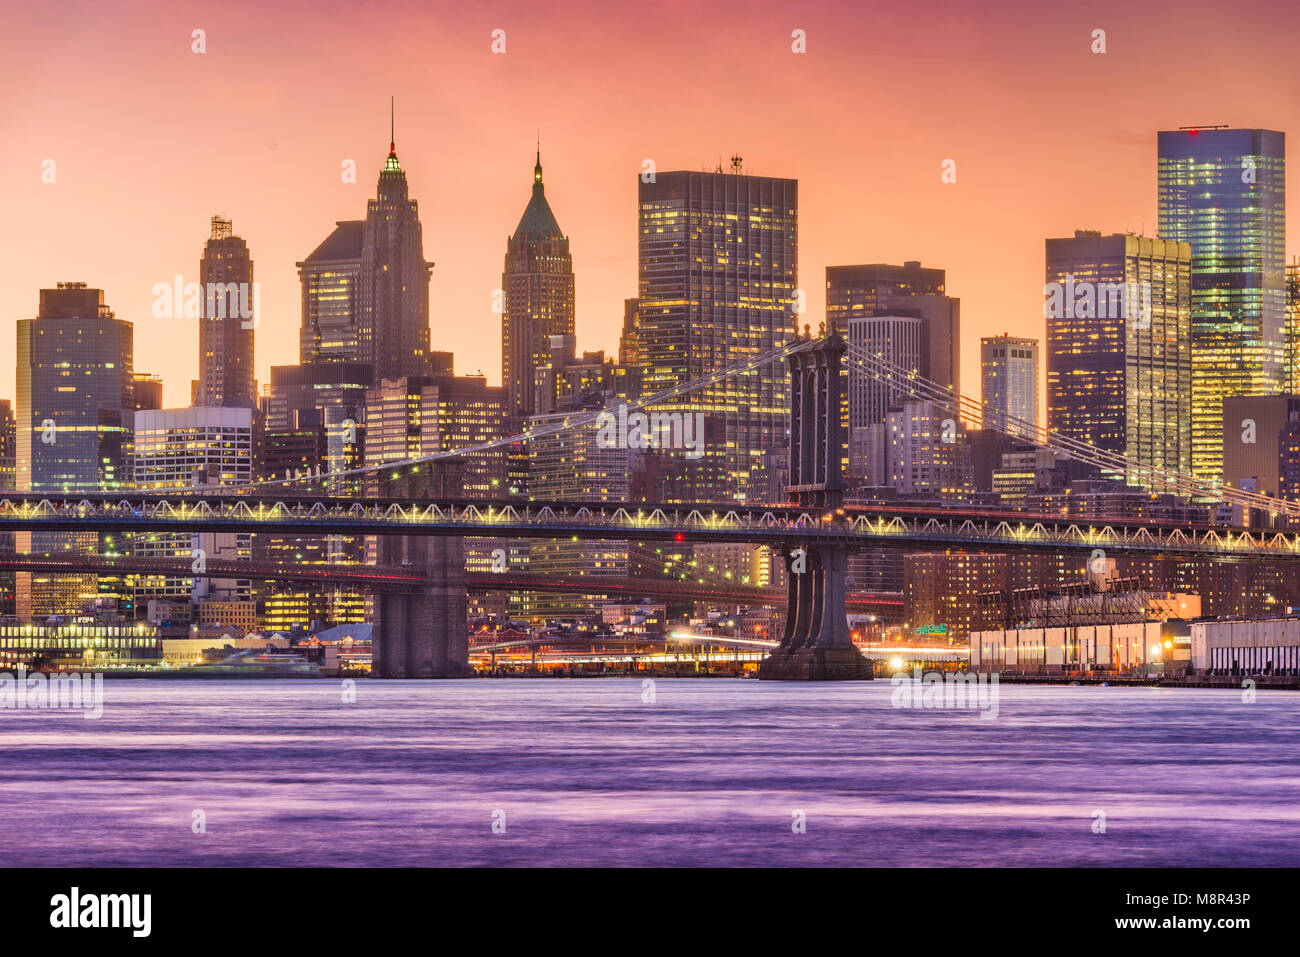 New York, New York, USA lower Manhattan Financial District skyline at dusk on the East River. - Stock Image